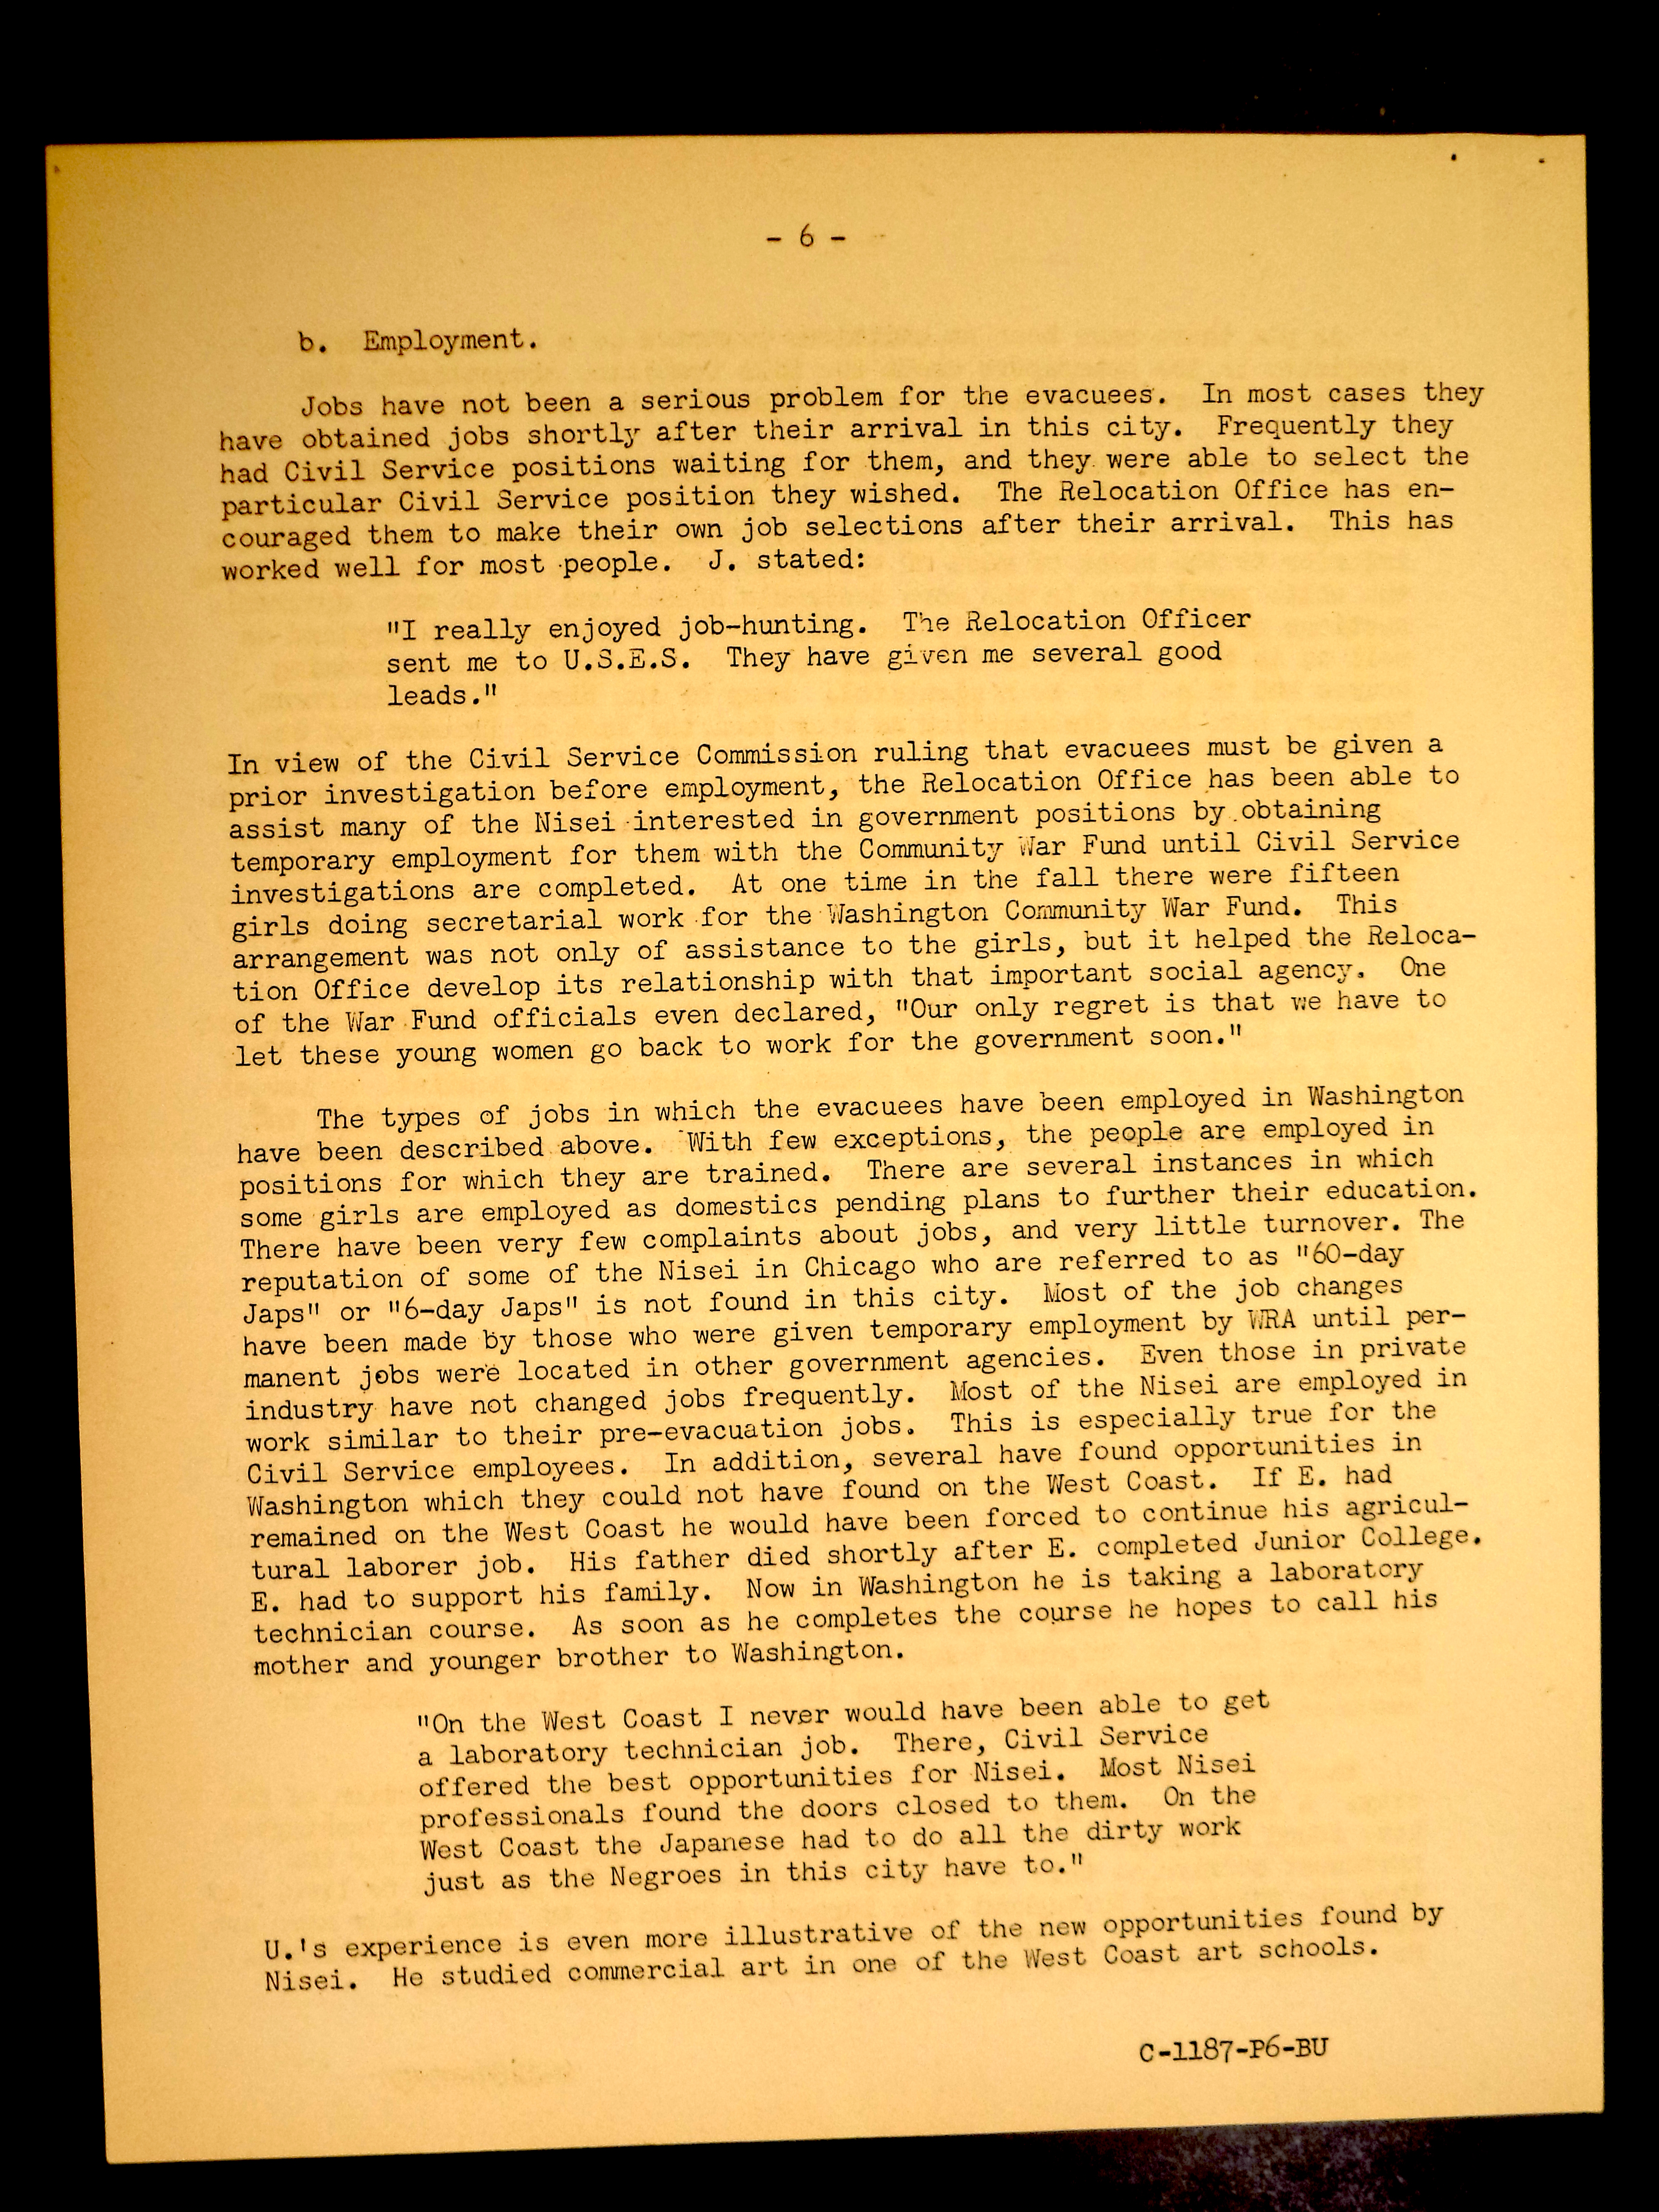 ese american relocation centers records a student digital relocation to washington war relocation authority community analysis relocation studies no 1 4 1944